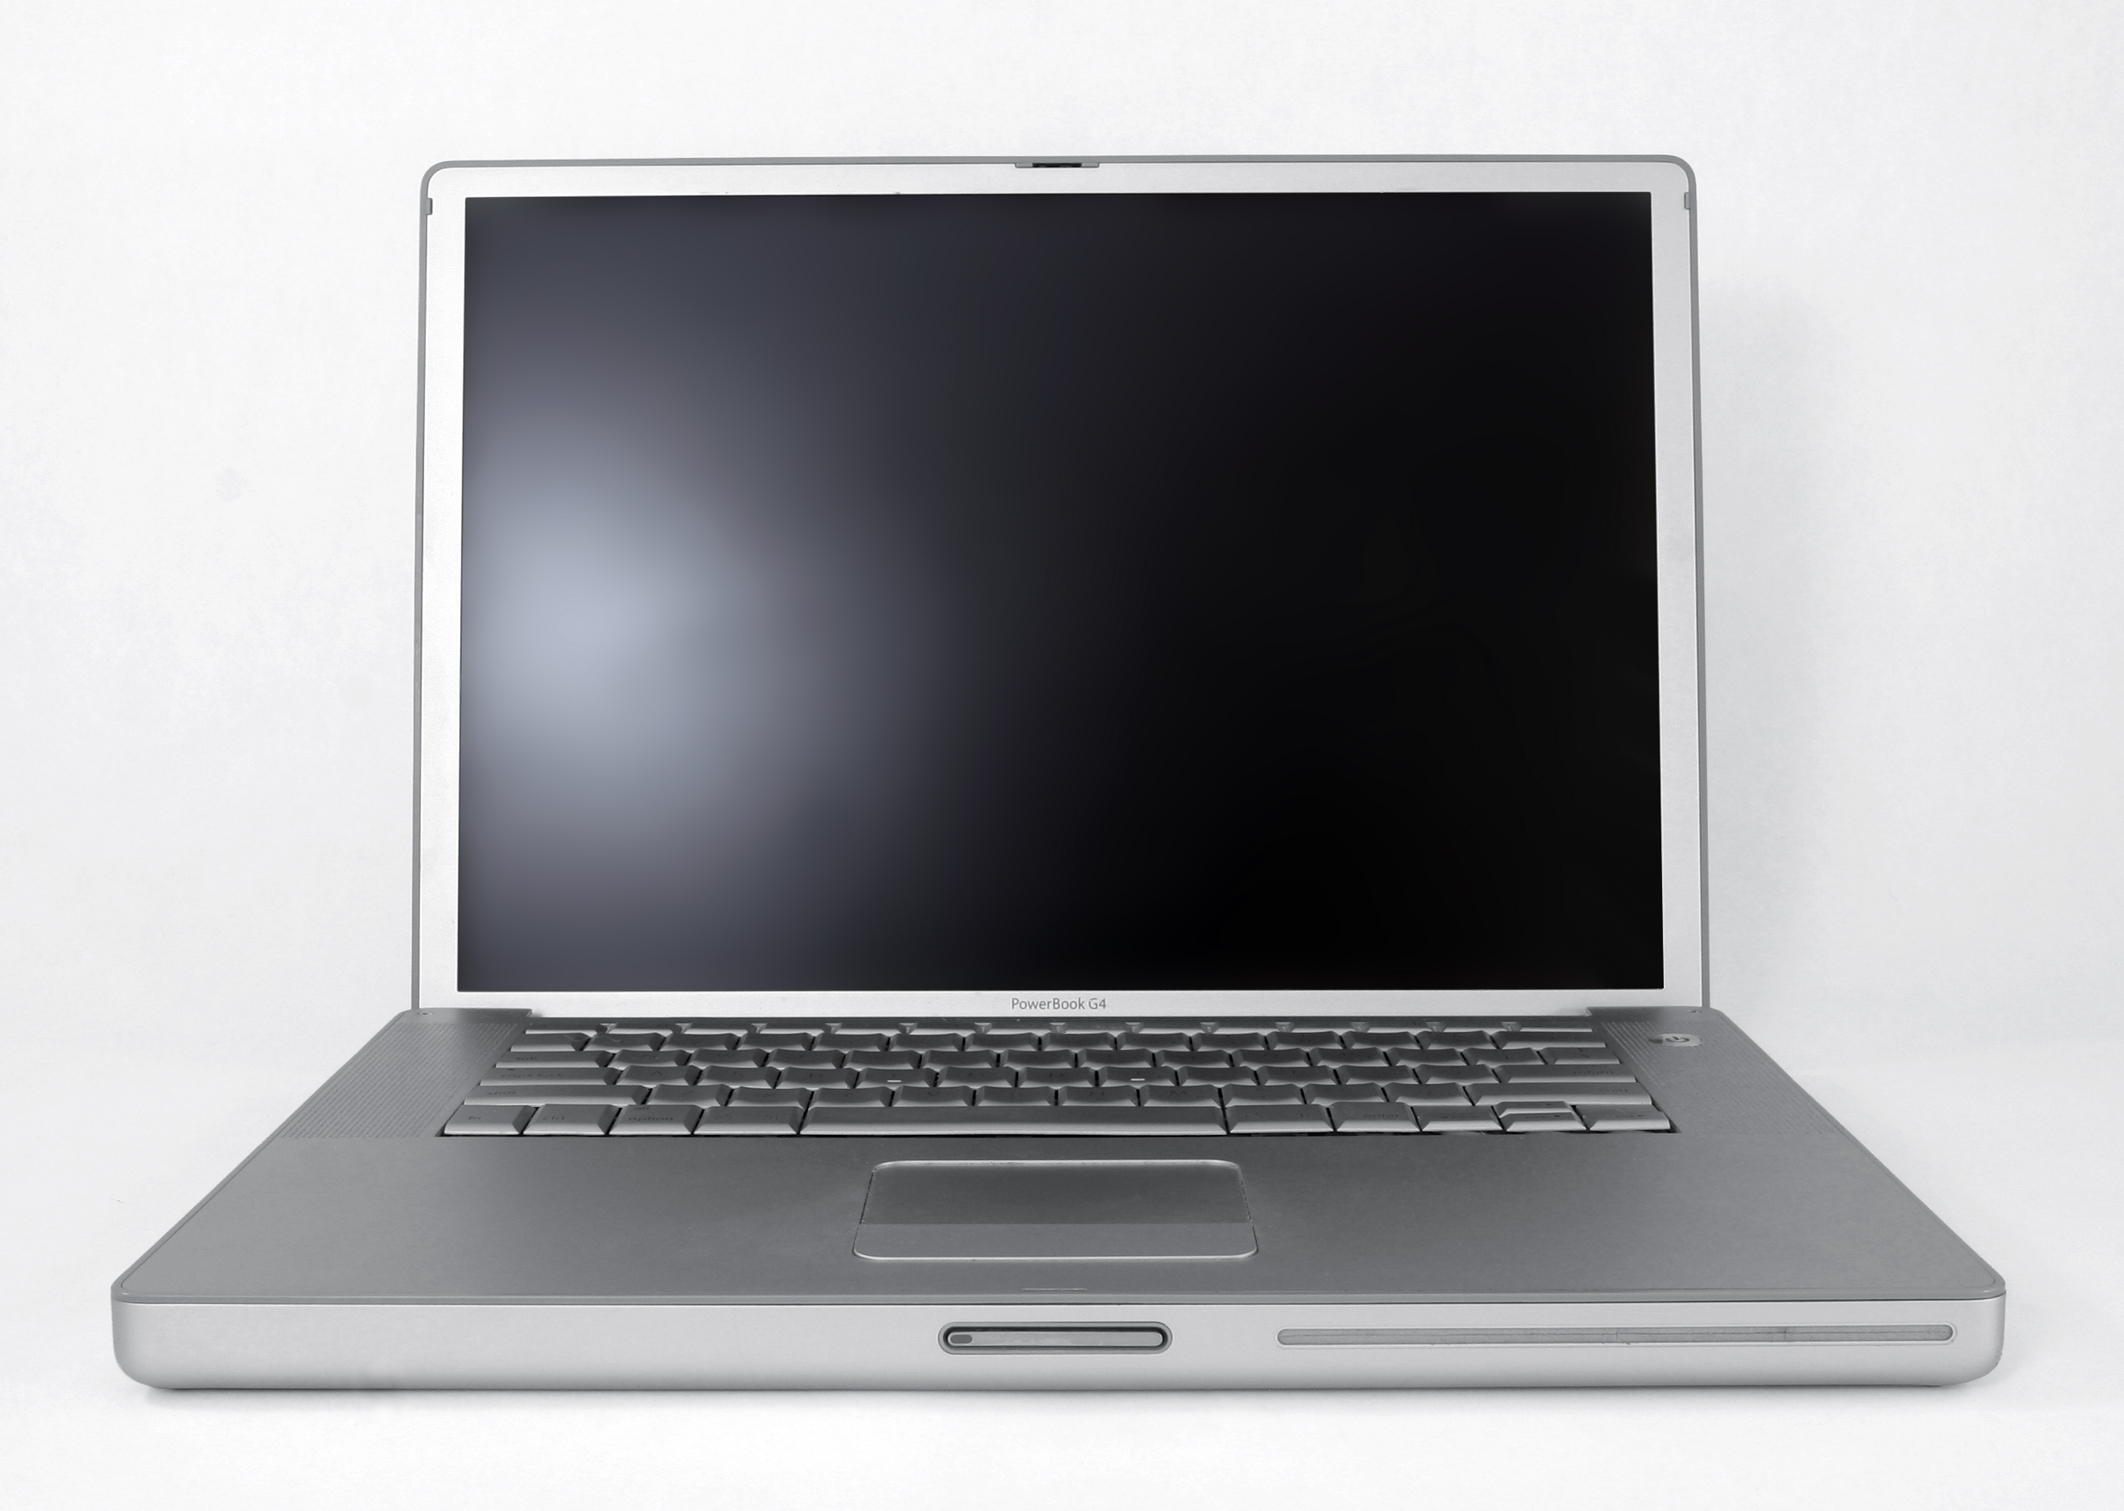 PowerBook G4 - Wikipedia